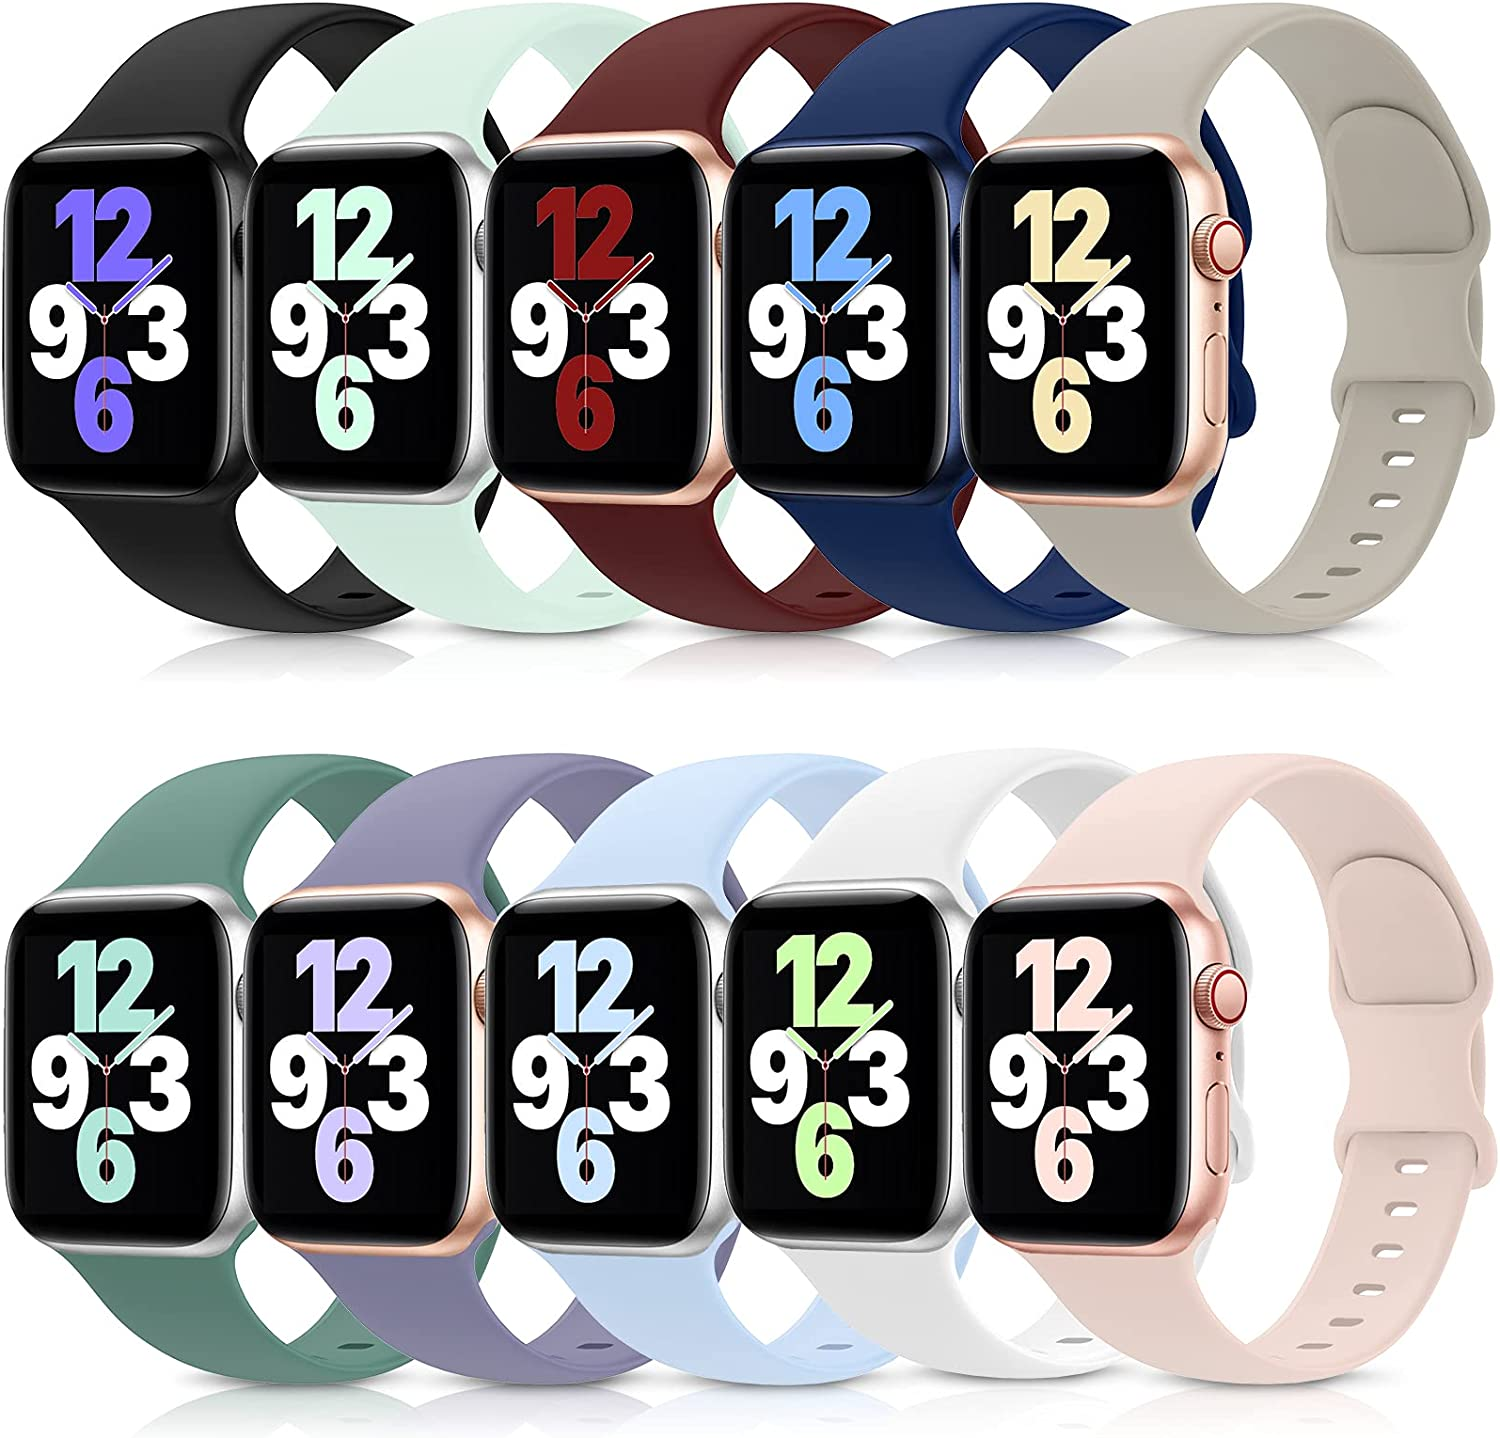 10 Pack Bands Compatible with Apple Watch Band 38mm 40mm 42mm 44mm, Soft Silicone Sport Replacement Strap Compatible with iWatch Series 6 5 4 3 2 1 SE Women Men 38MM/40MM